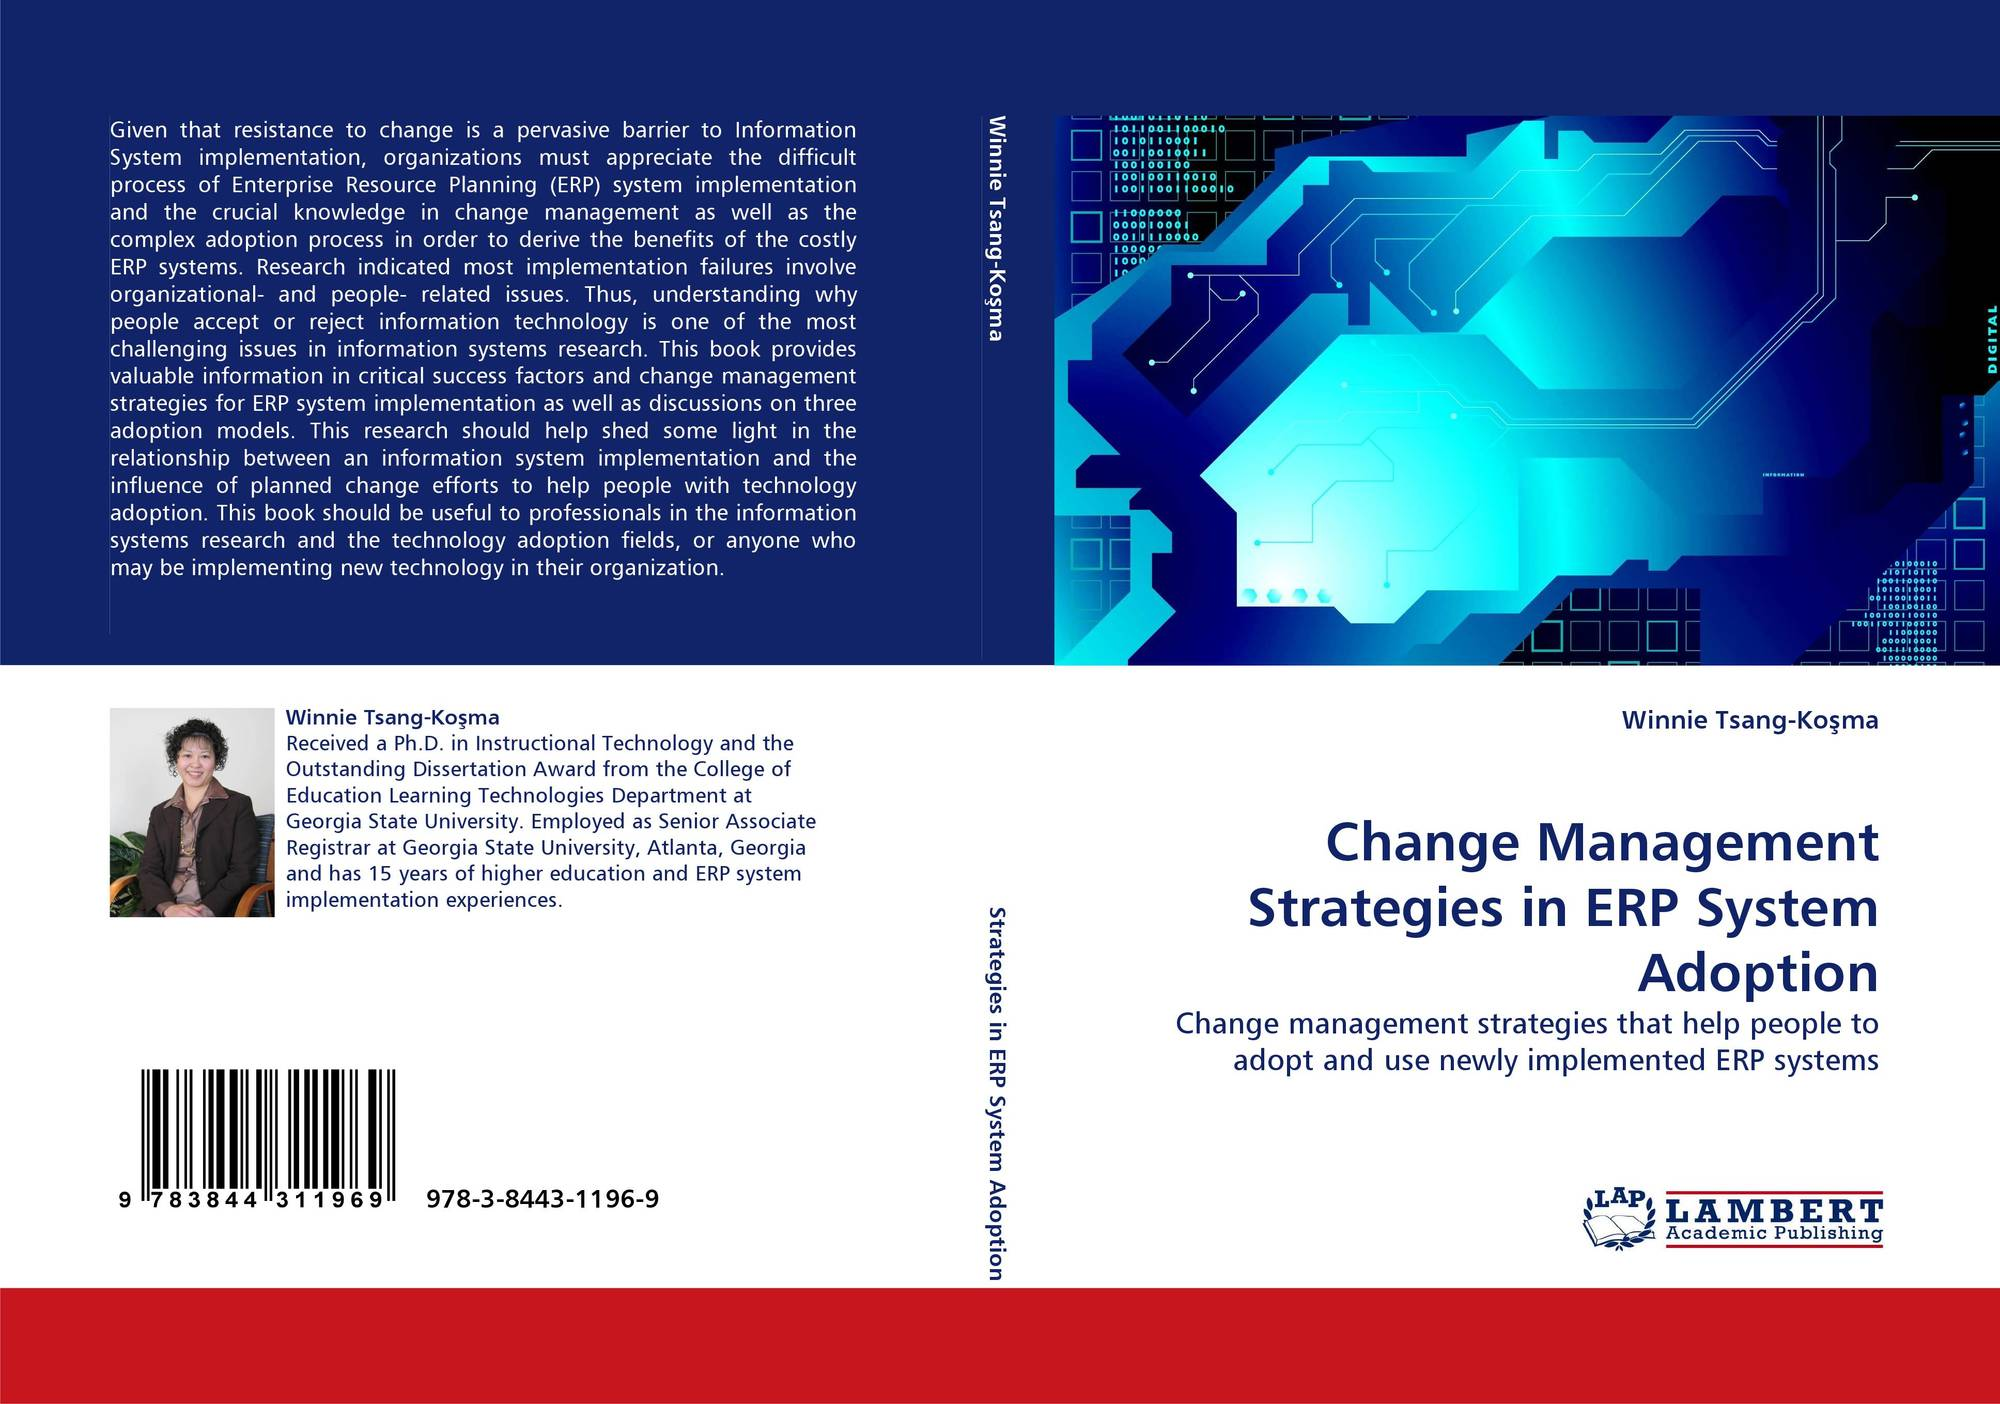 strategies in change management Change management strategy taking full account of the people who are most impacted by the change sets the scene for success.